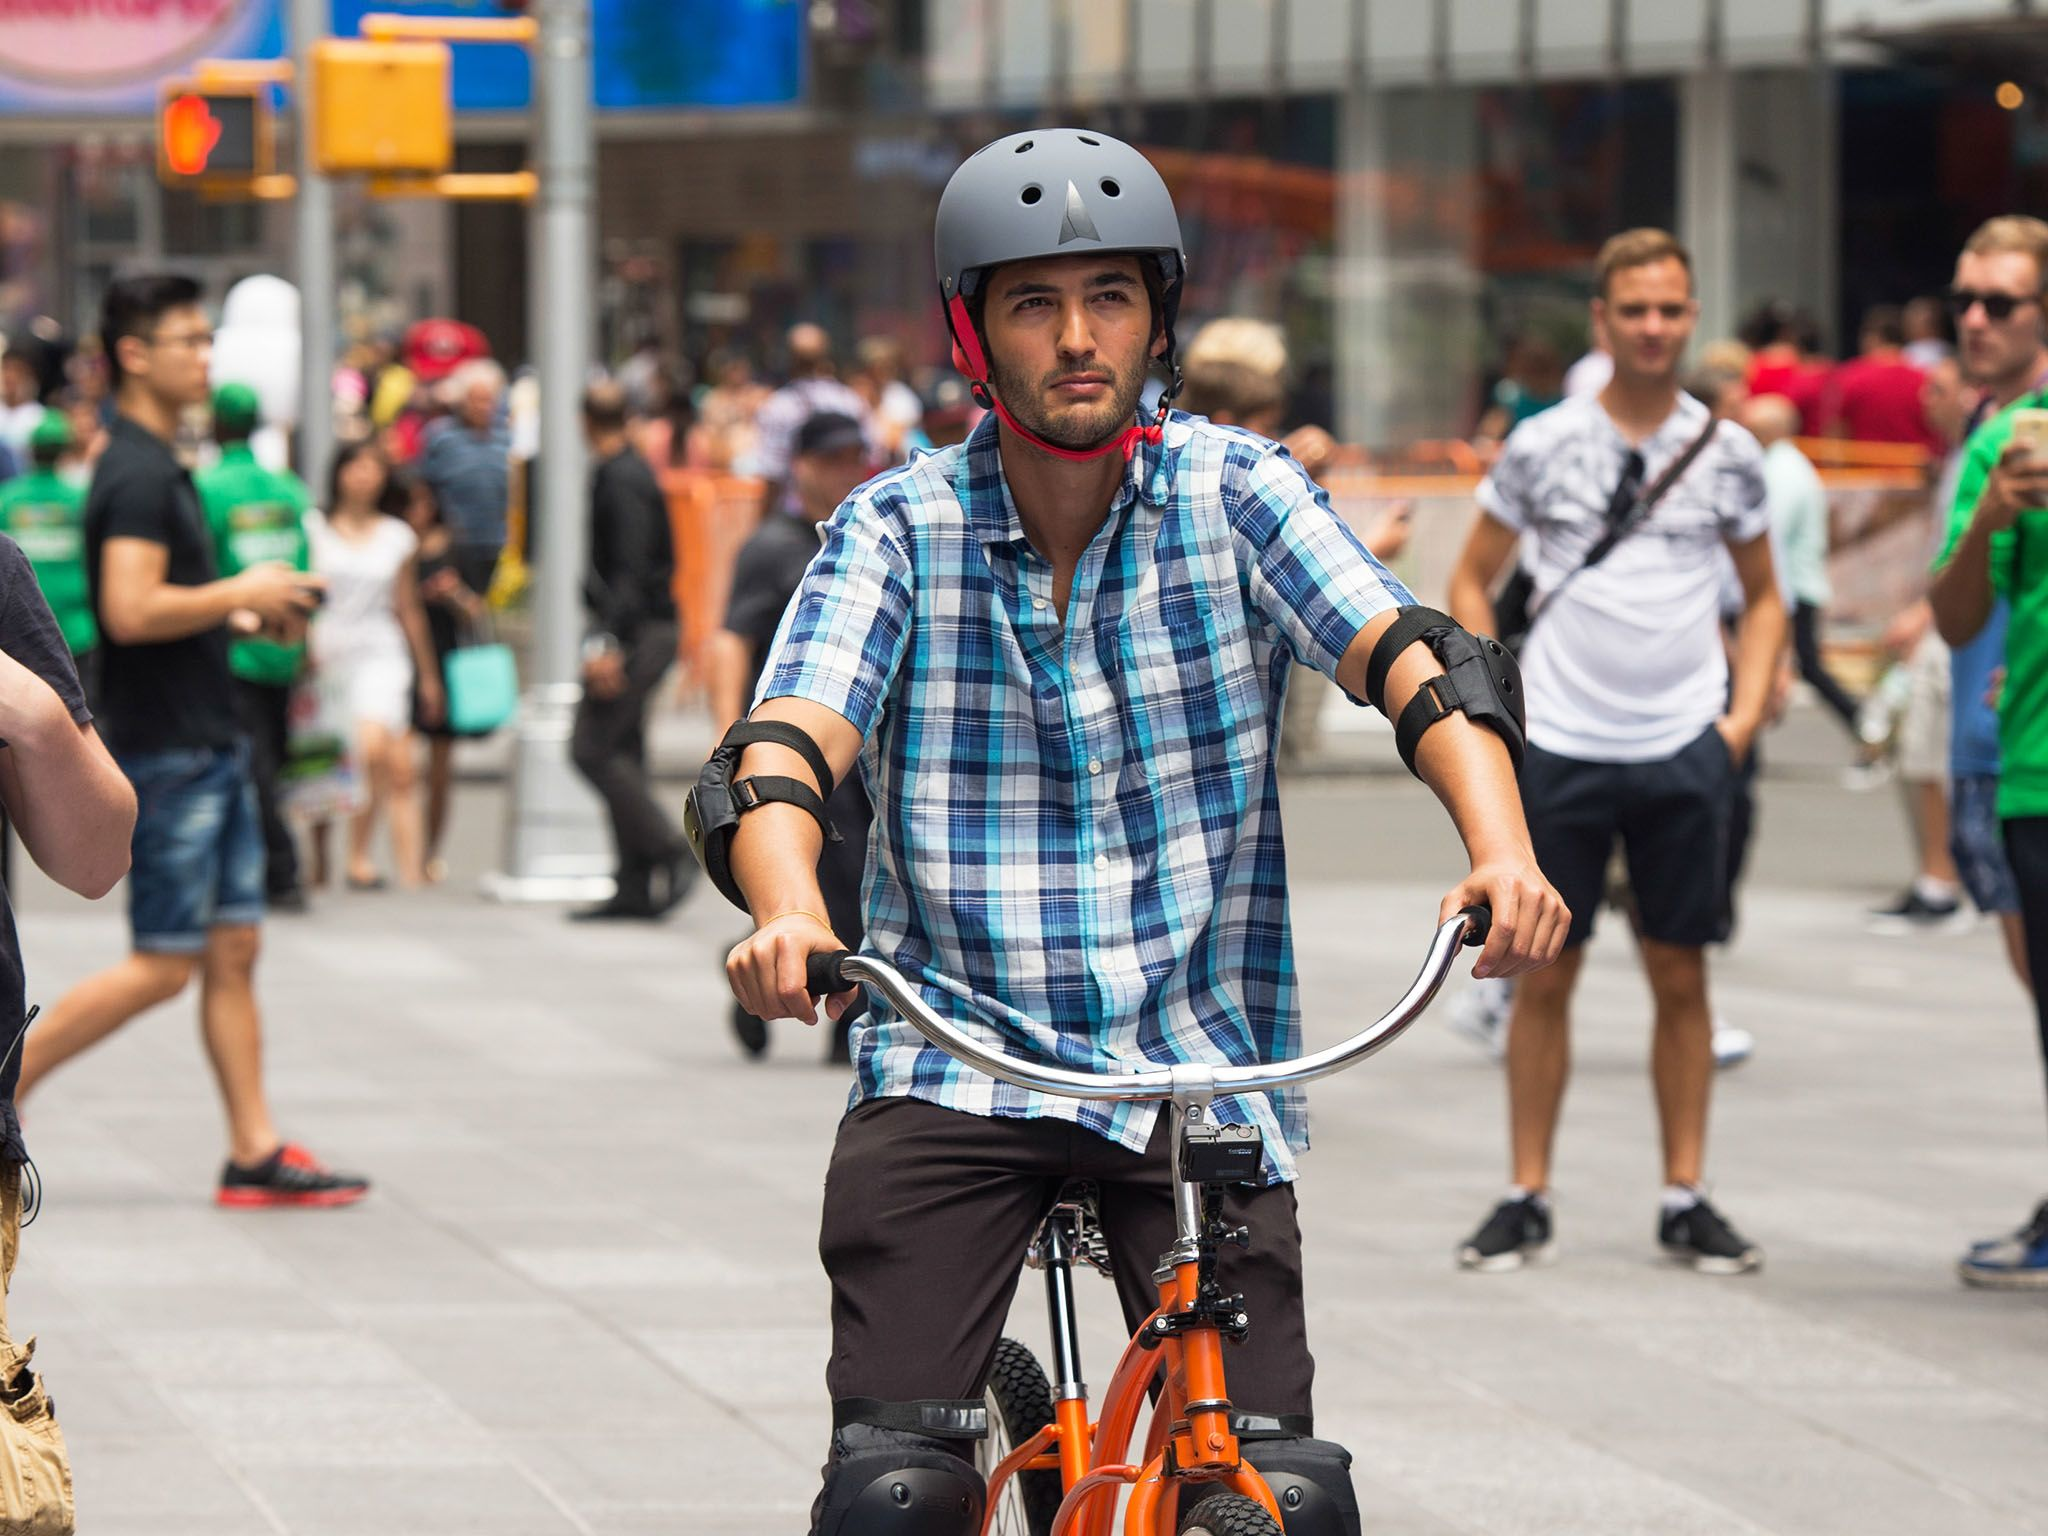 New York City, N.Y.: Jason Silva preparing to ride the Backwards Bike in front of a crowd in... [Photo of the day - فوریه 2016]